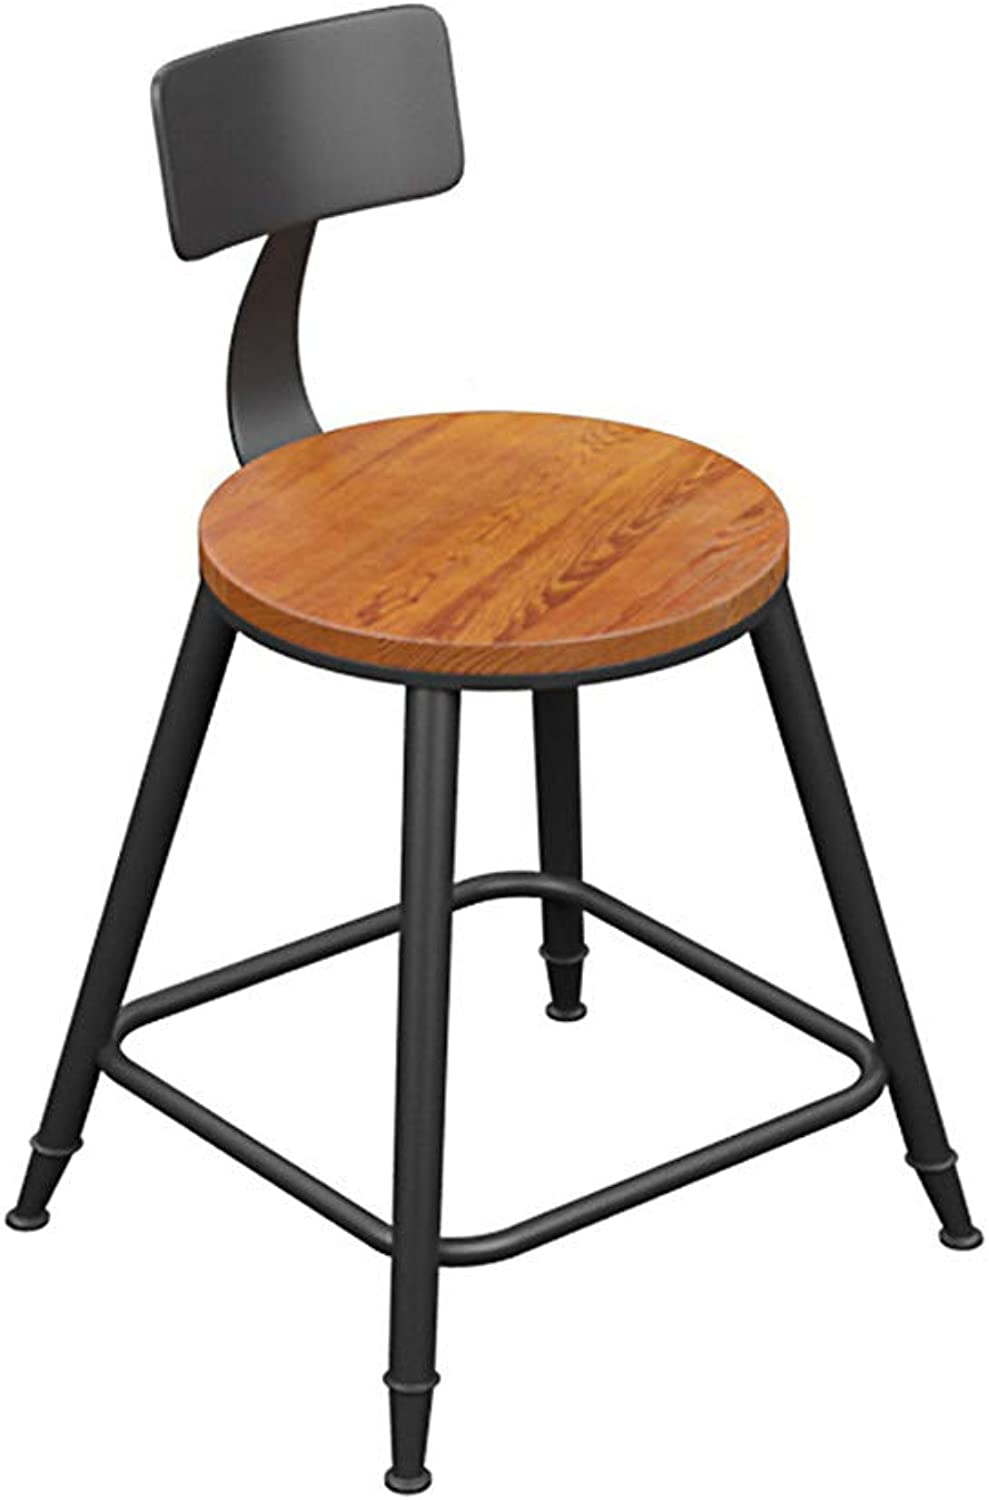 Chair bar Stool Iron Chair Dining Chair, with backrest and Pedals, Load Capacity 150KG,for Furniture, Kitchen, bar, Cafe, Restaurant